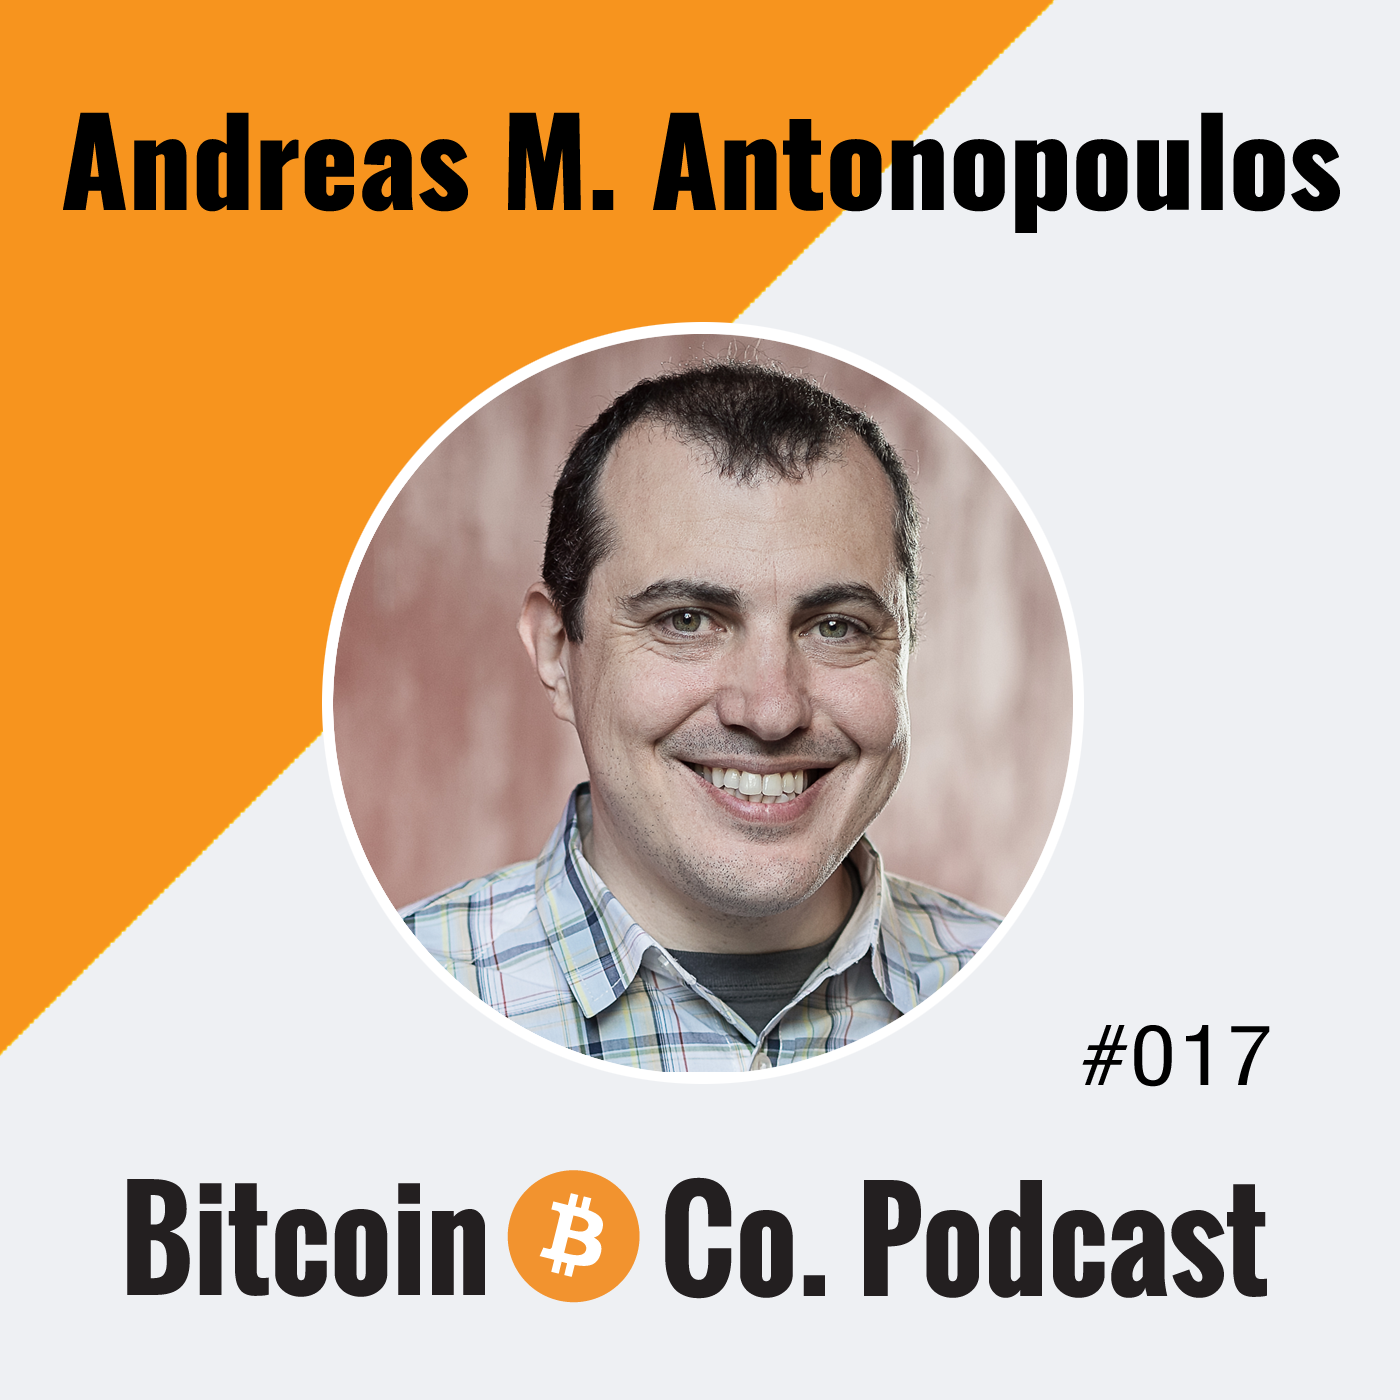 Andreas M. Antonopoulos Busting Arguments Against Bitcoin and Revealing Real Risks